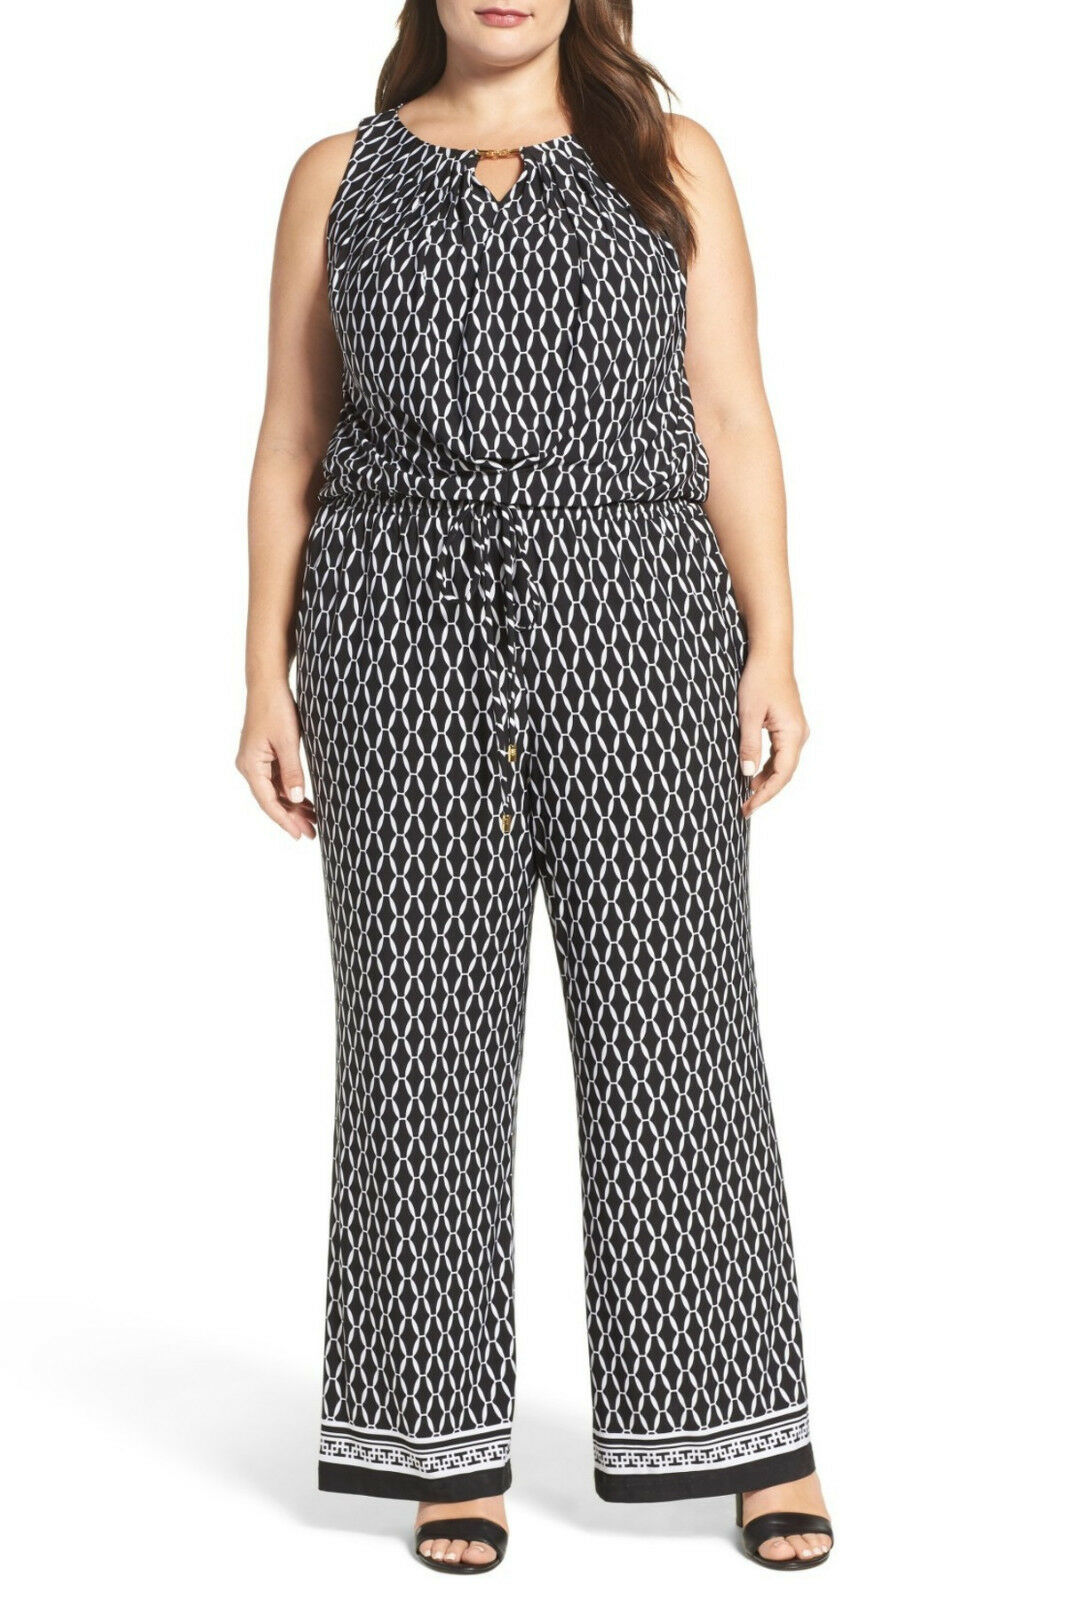 Tahari Print Wide Leg Jumpsuit (Plus Size) Sleeveless, Size 22W,  148, NWT